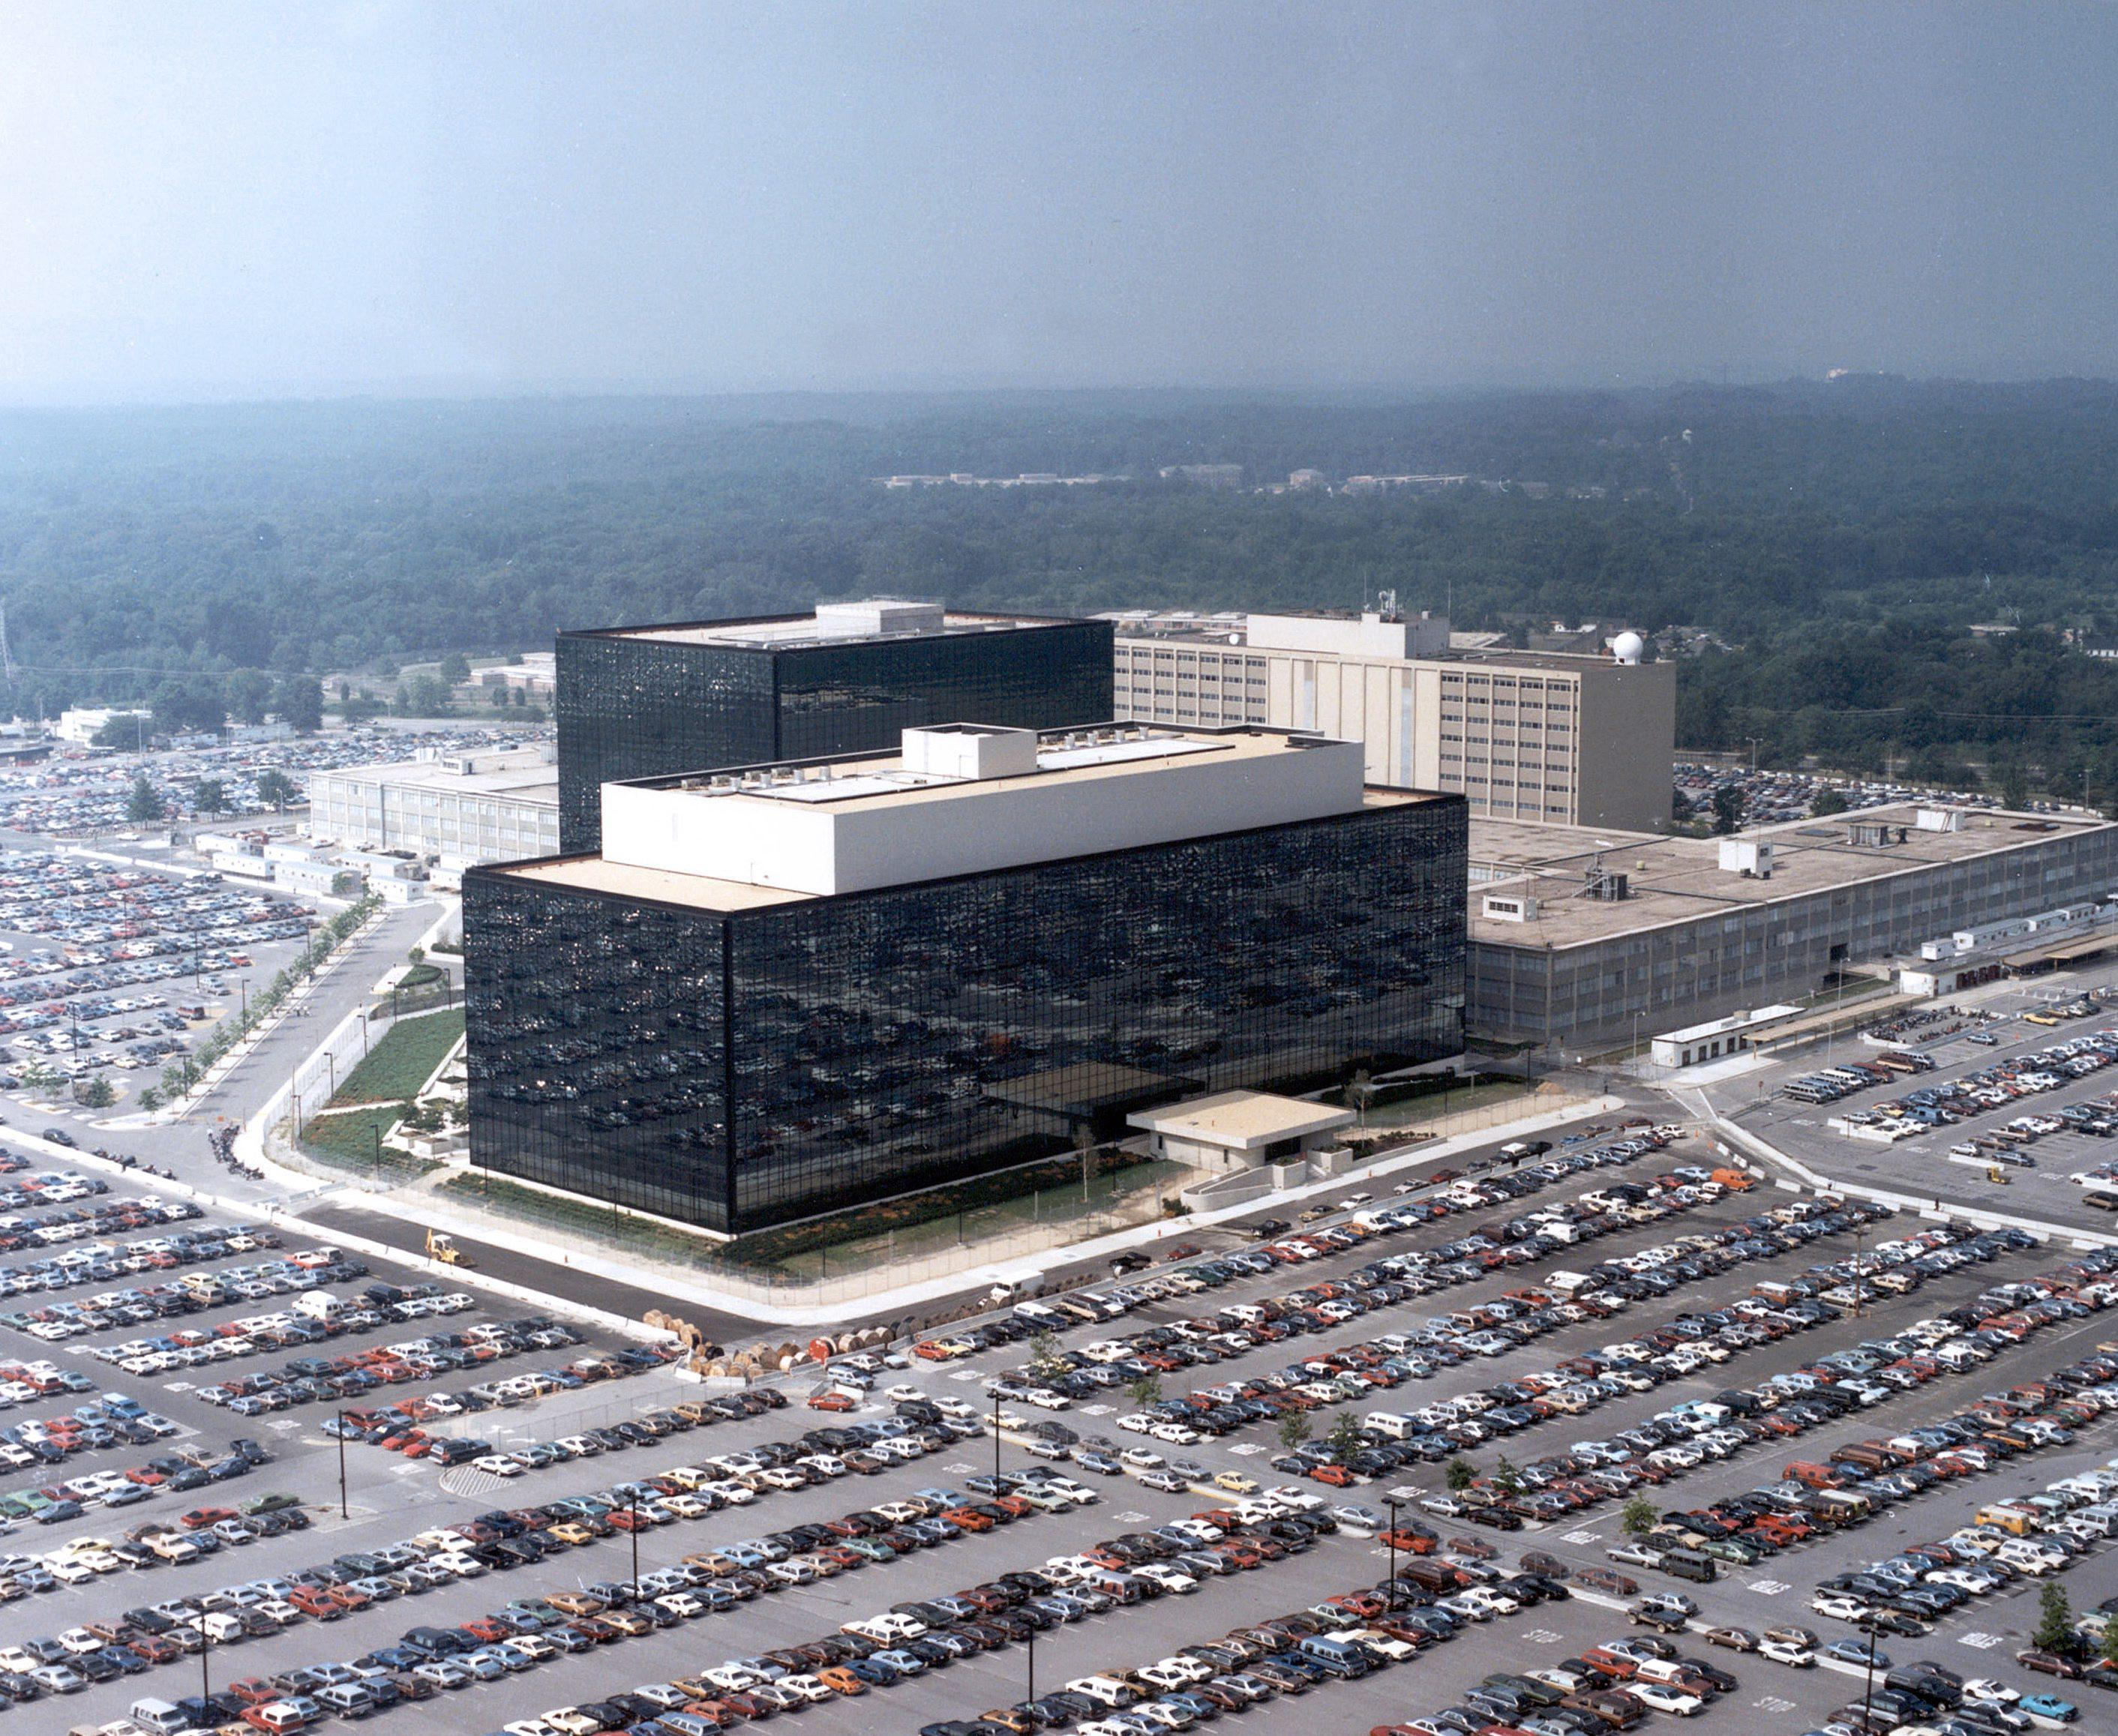 La sede della National Security Agency a Washington (Epa)